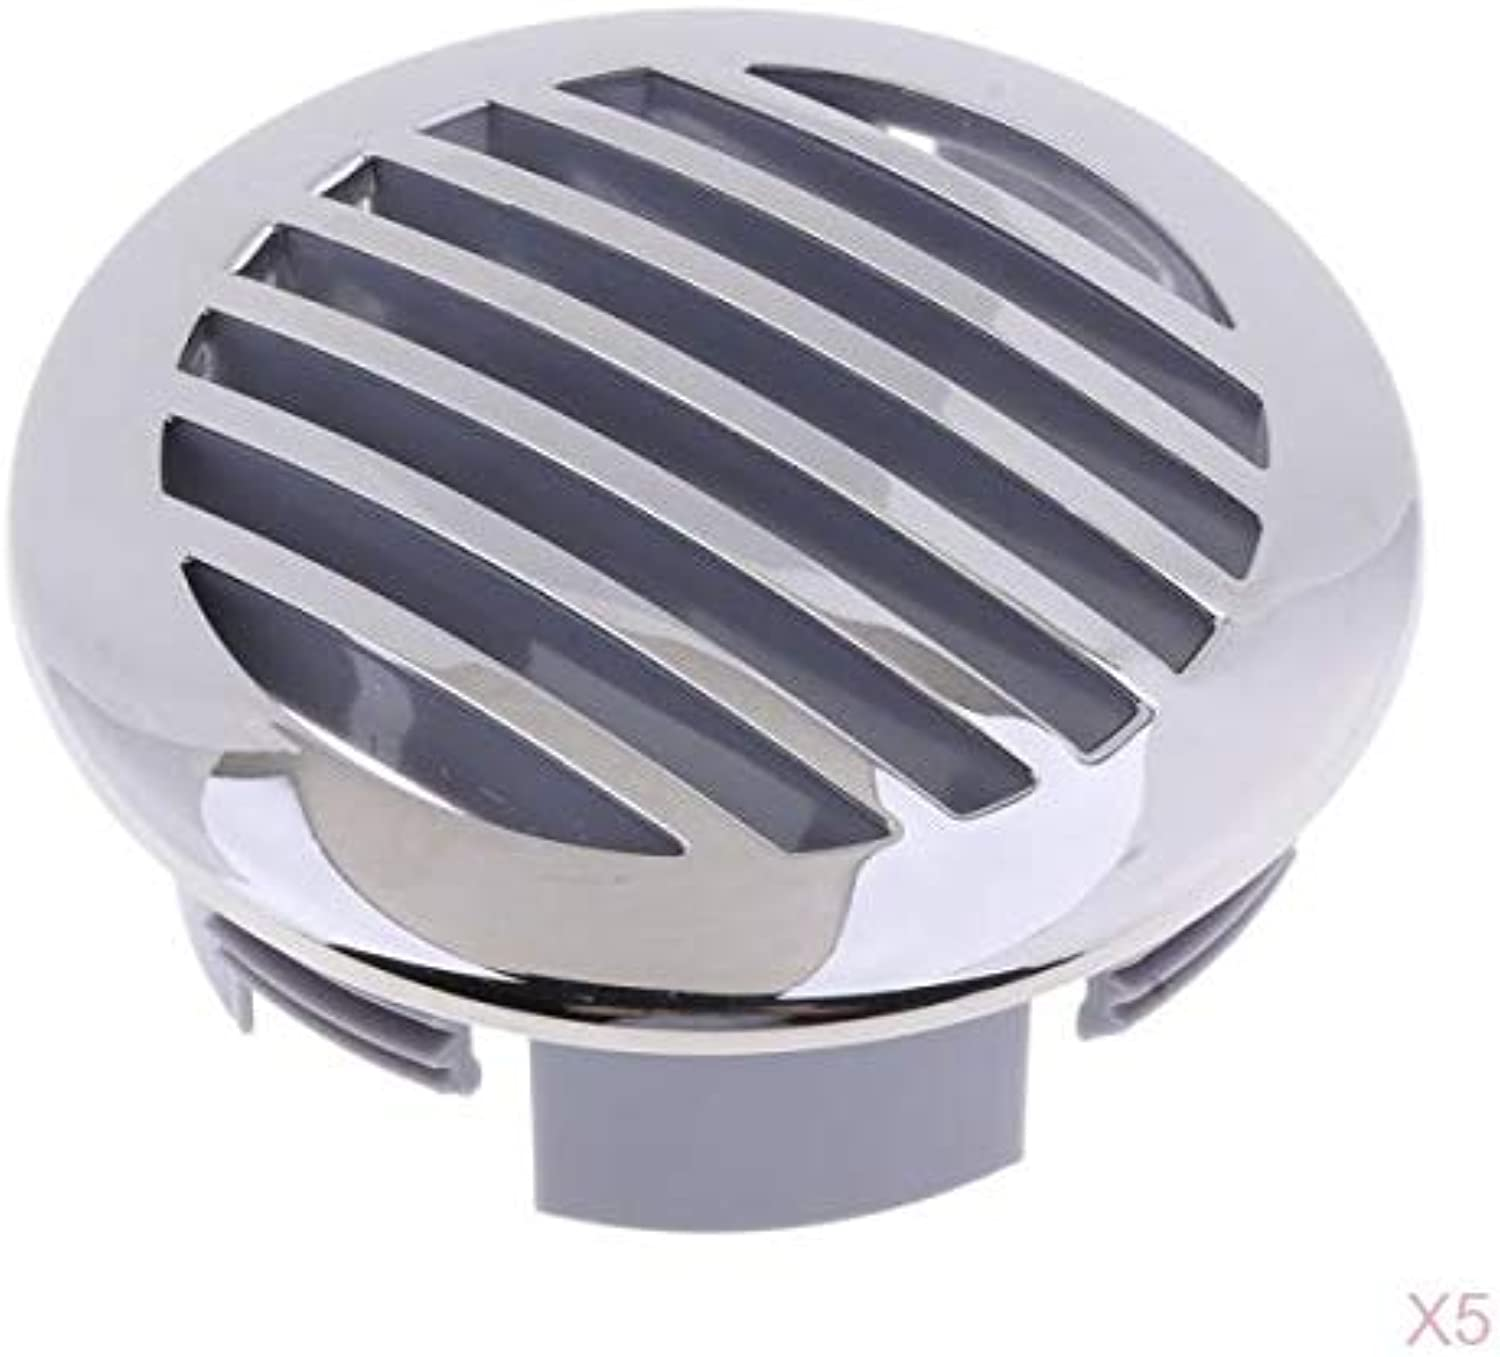 Almencla 5 Pieces Boats 3 inch 316 Stainless Steel Curved Clad AirFlow Vent Air Vent Cover Guard  81932SSHP